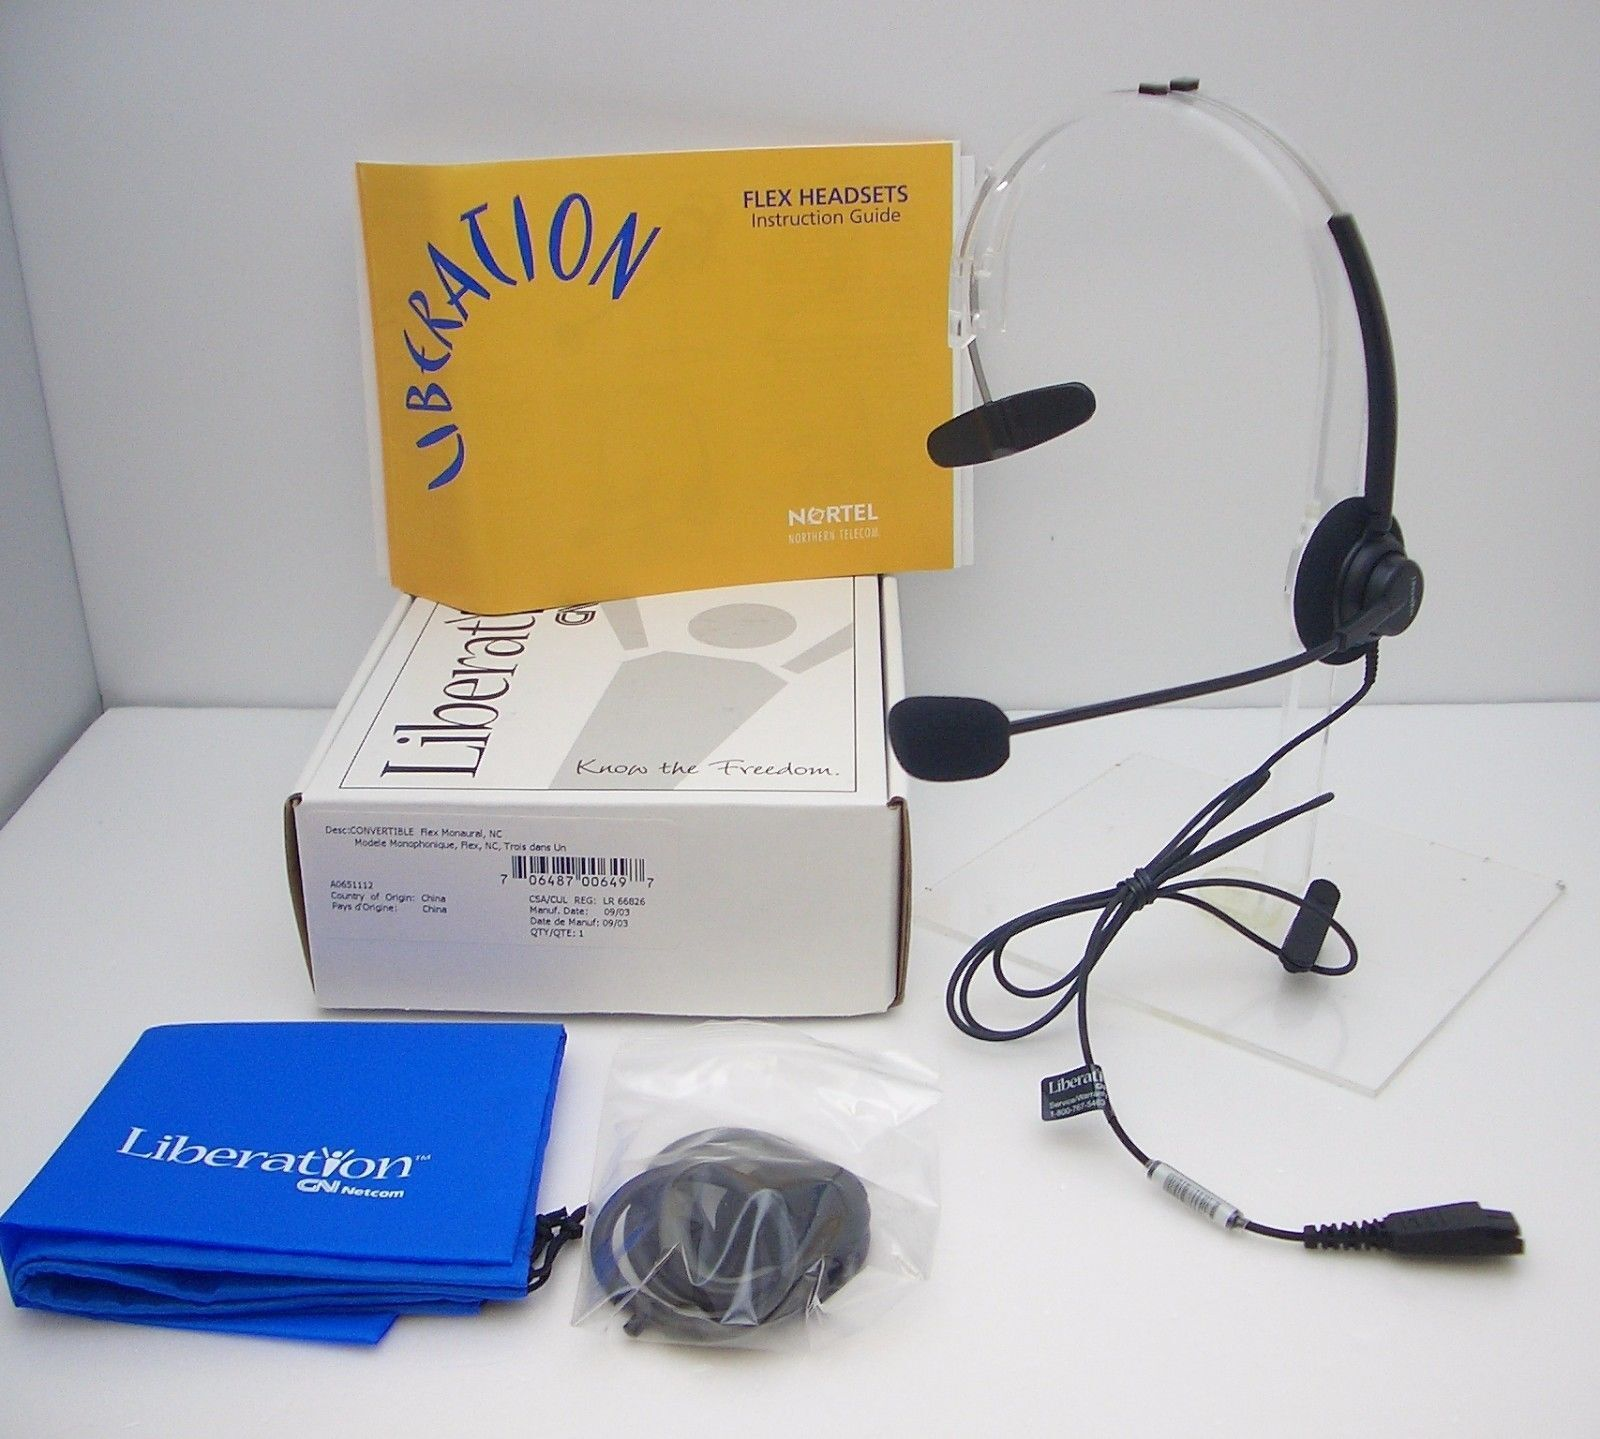 It requires Jabra Link 850 Amplifier which is not included